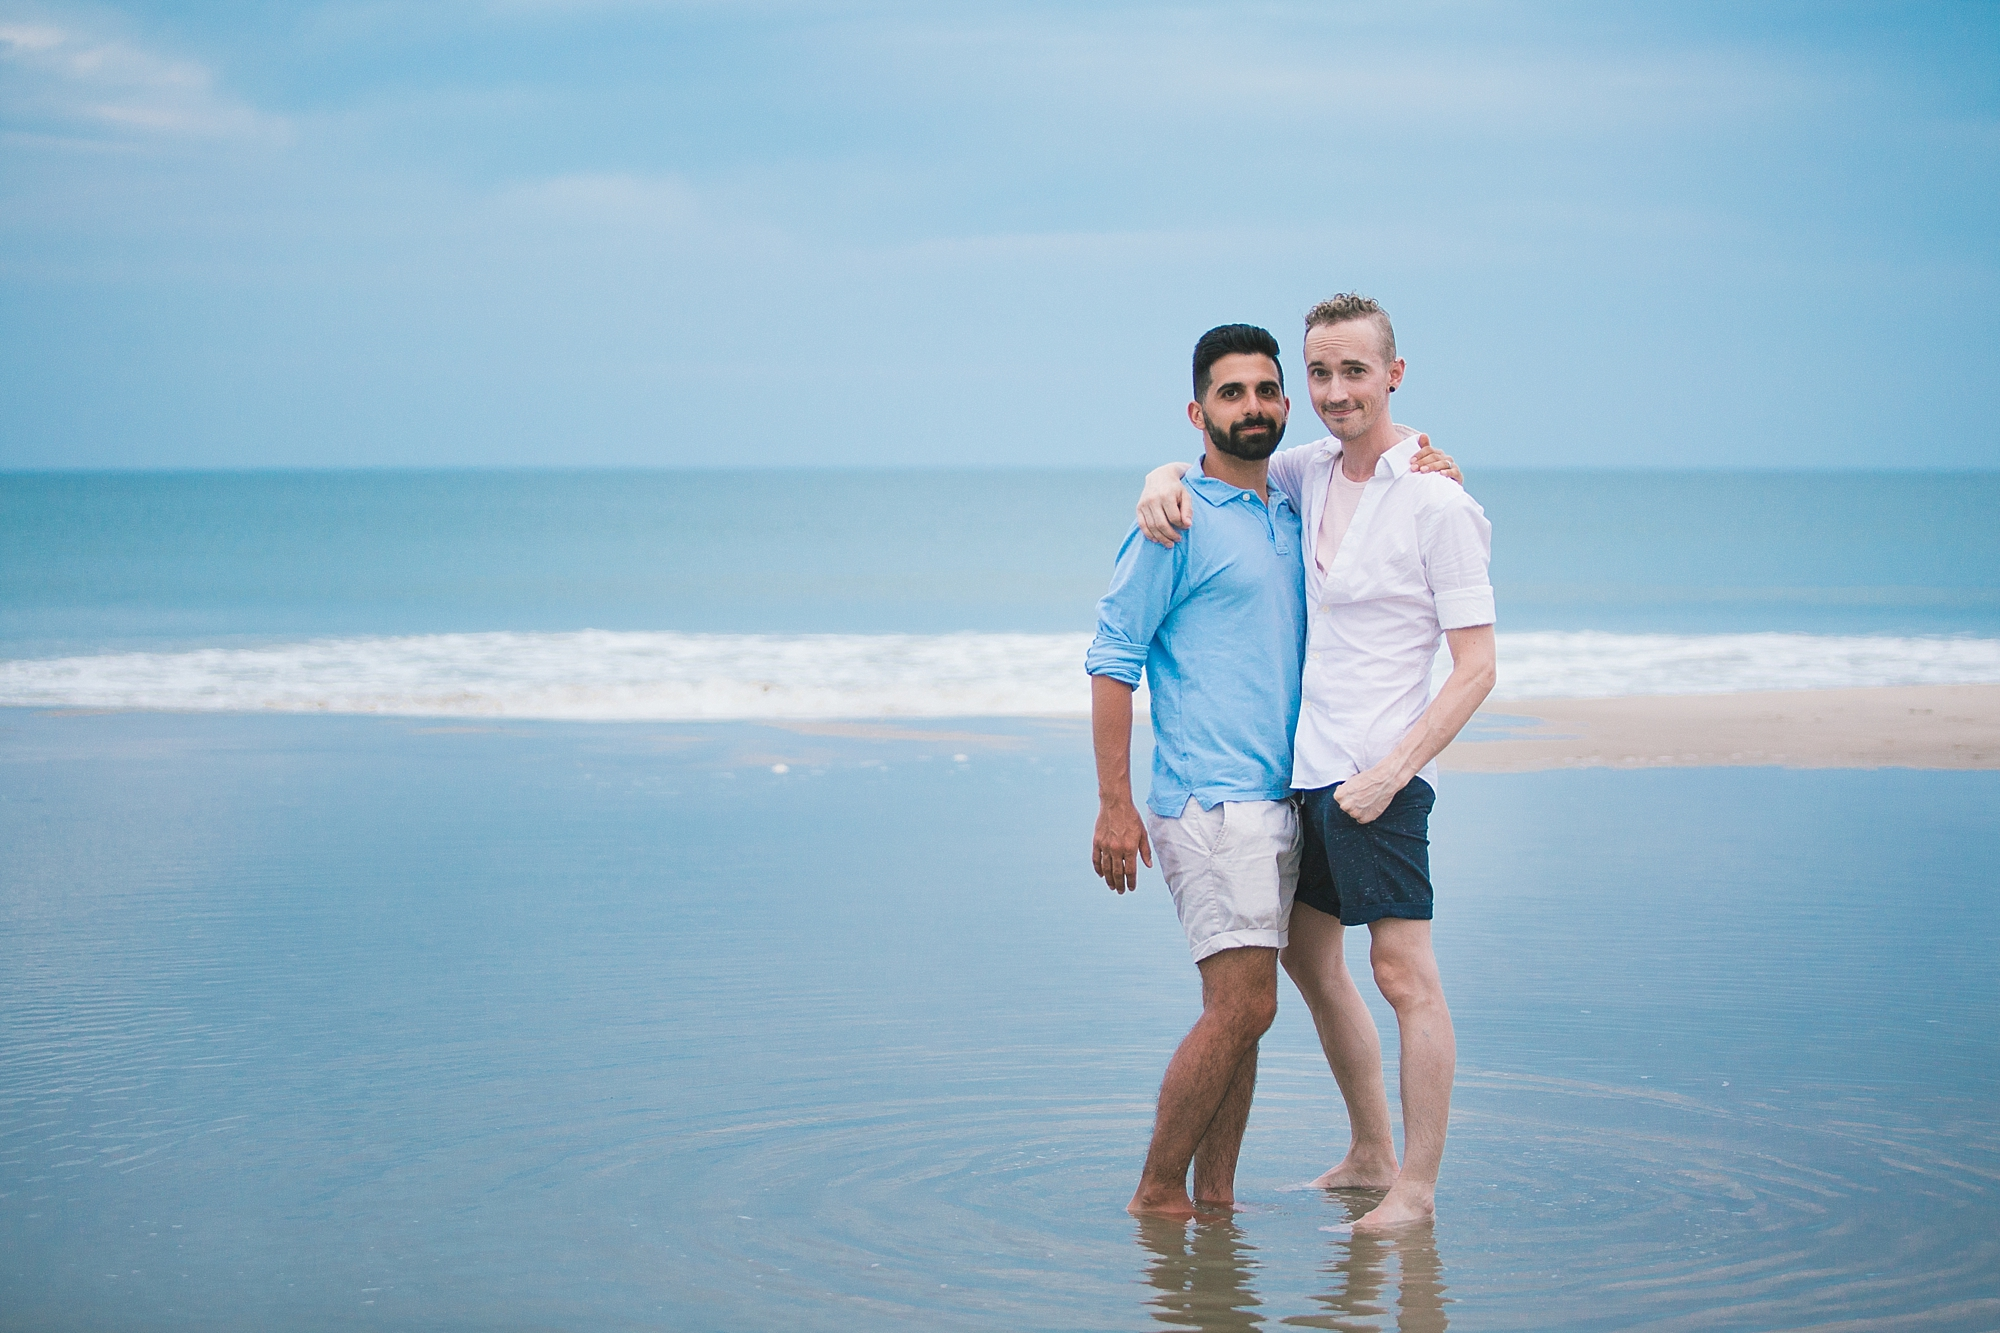 Love_by_Joe_Mac_Creative_Best_Philadelphia_Wedding_Photographer_LGBT__0025.jpg